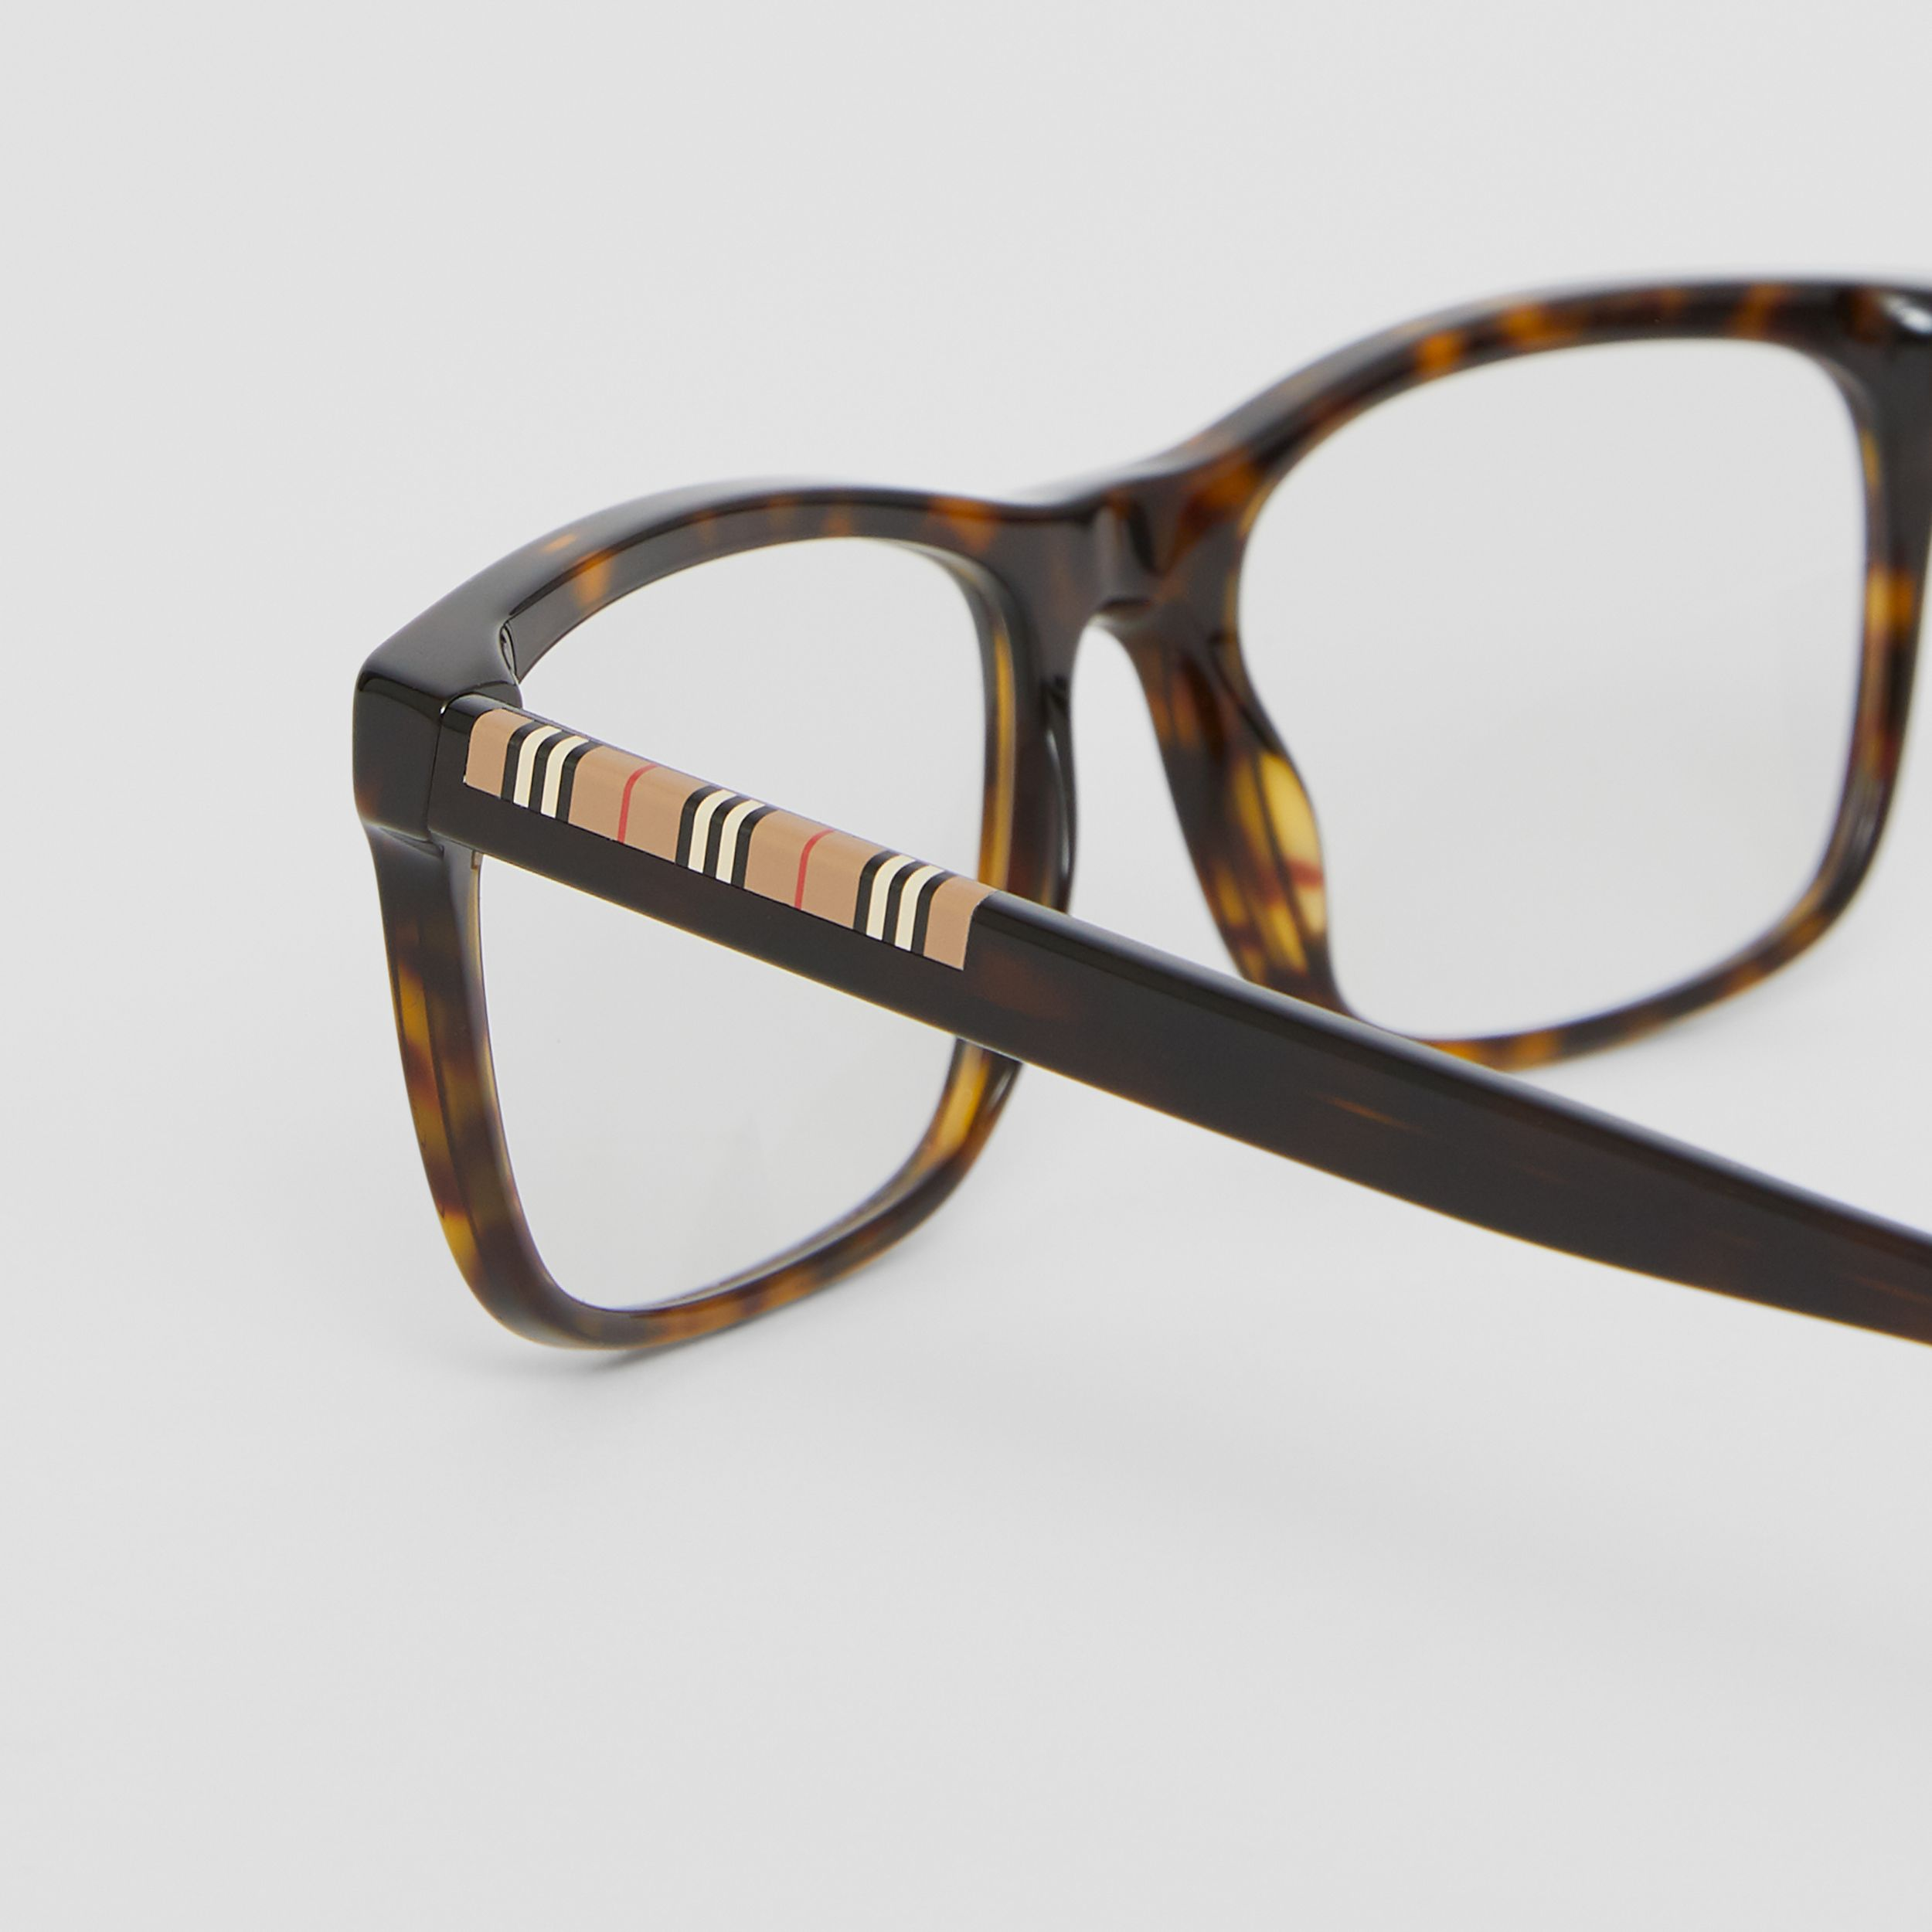 Icon Stripe Detail Rectangular Optical Frames in Tortoiseshell - Men | Burberry Canada - 2